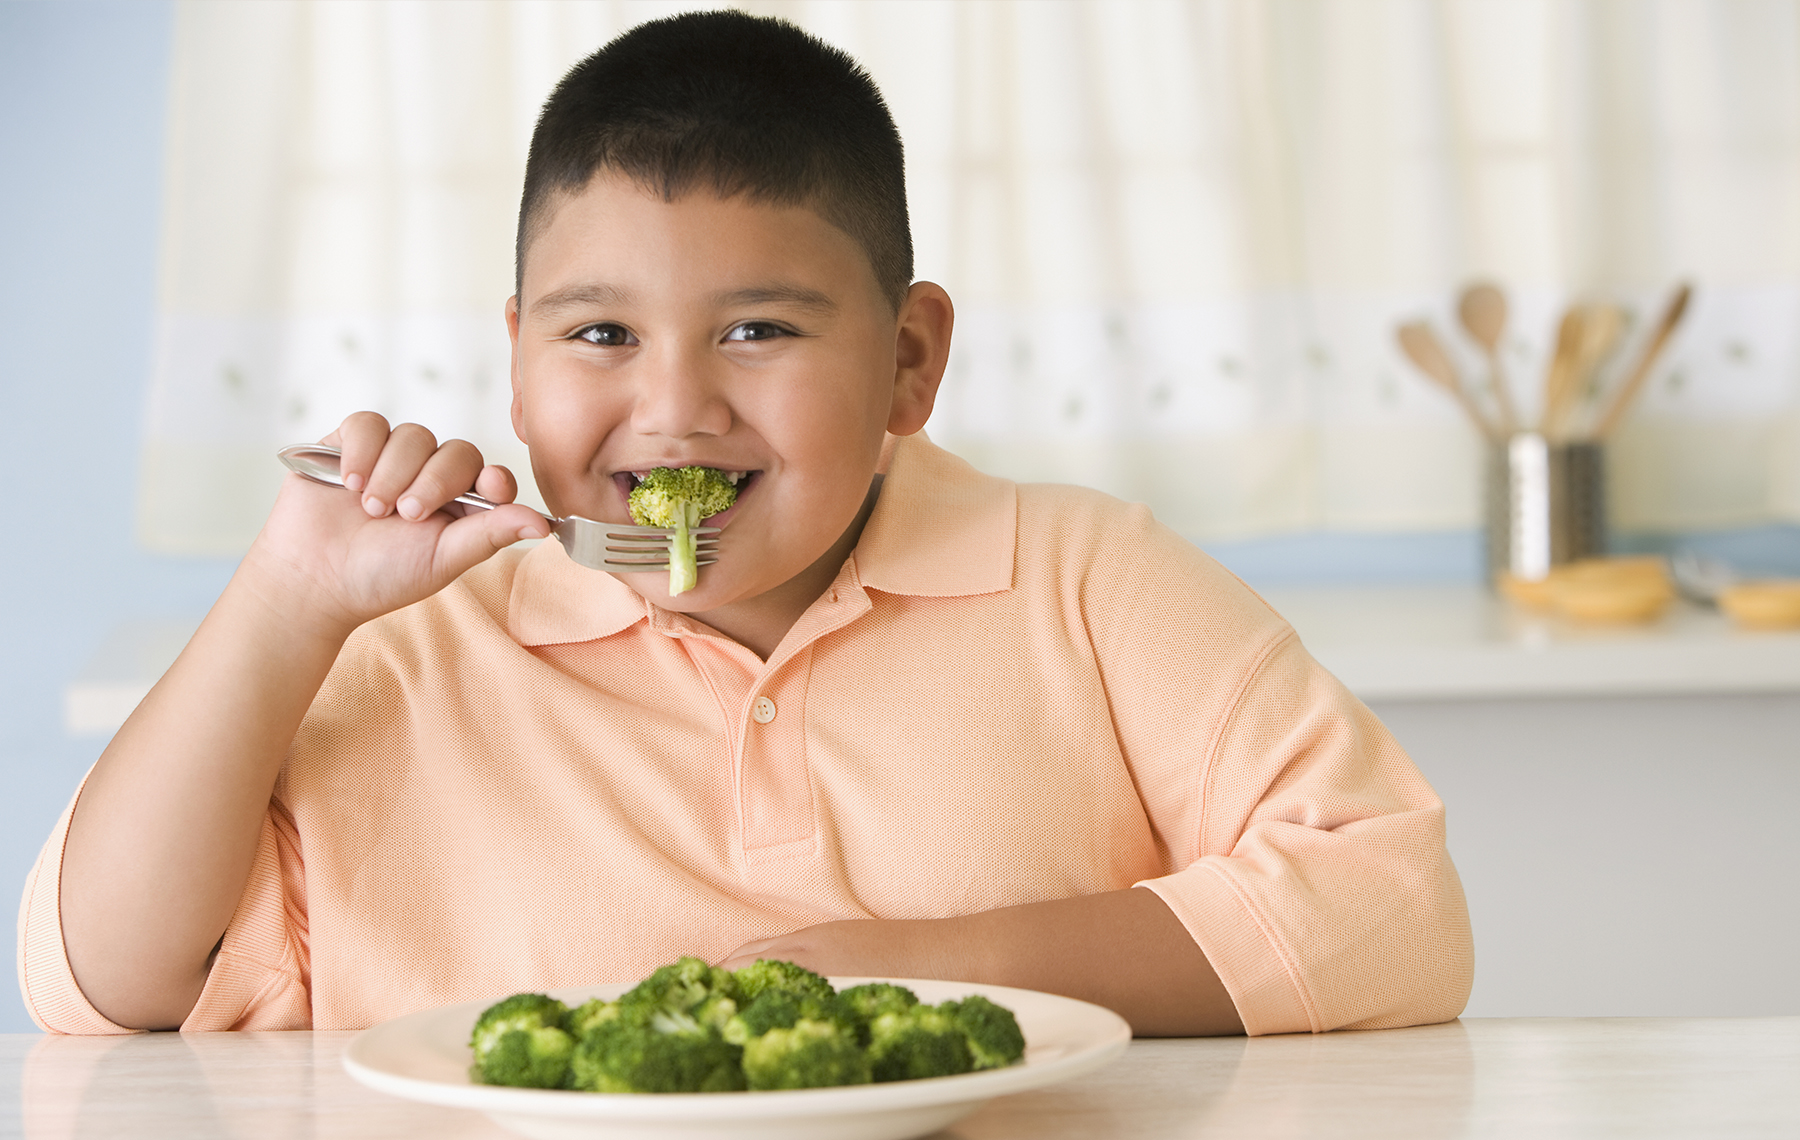 chubby child eating broccoli